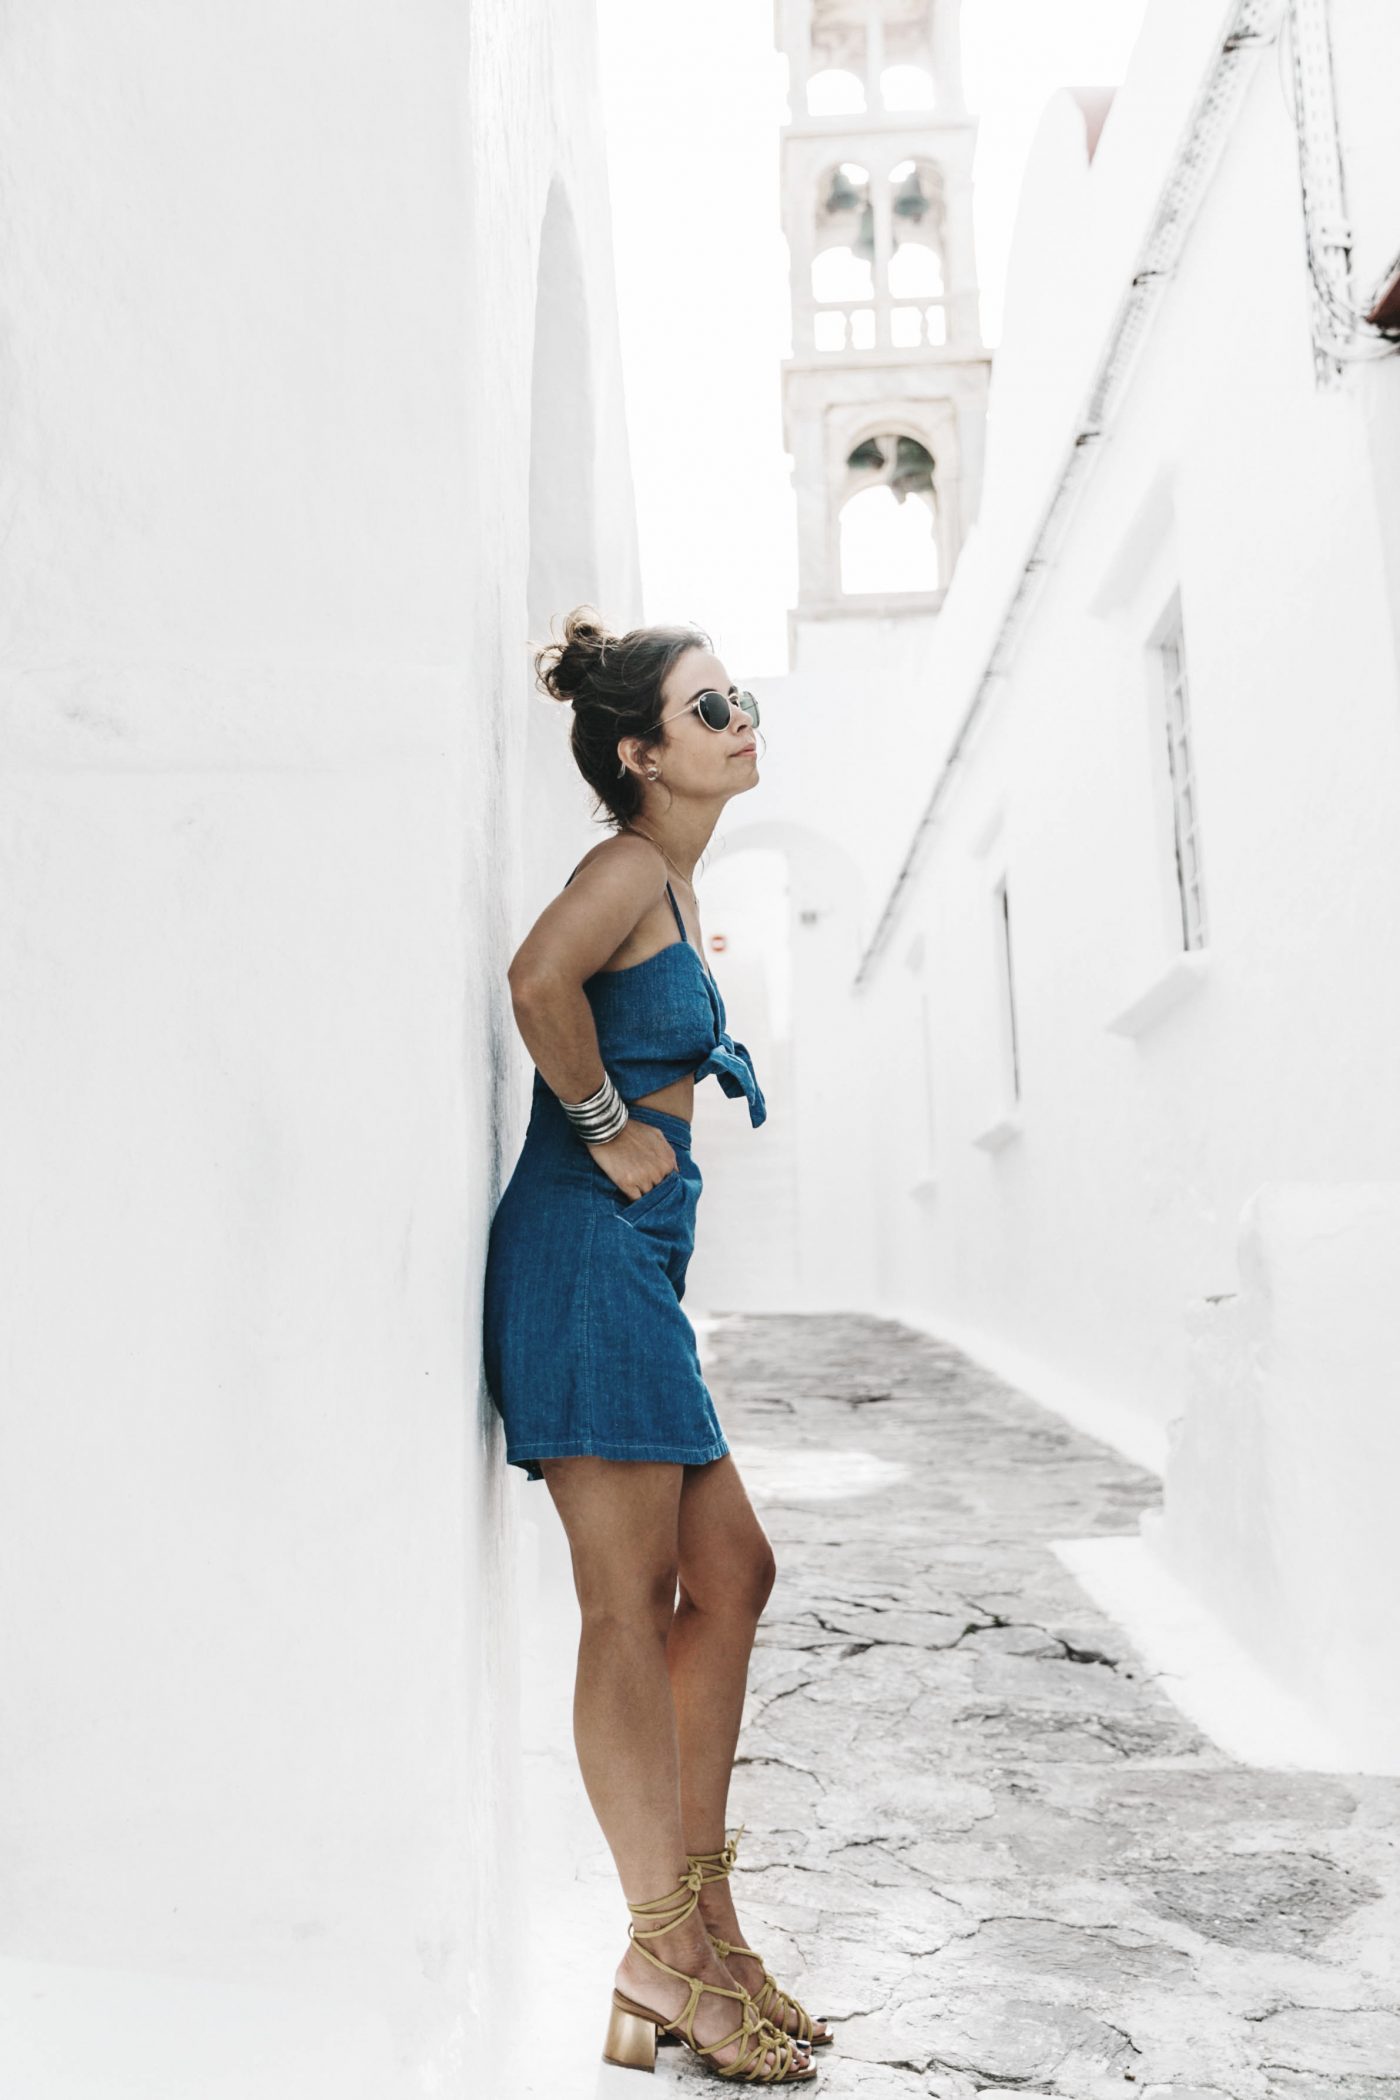 Topshop_Festival-Denim_Cut_Out_Dress-Yellow_Sandals-Outfit-Topknot-Mikonos-Street_Style-88